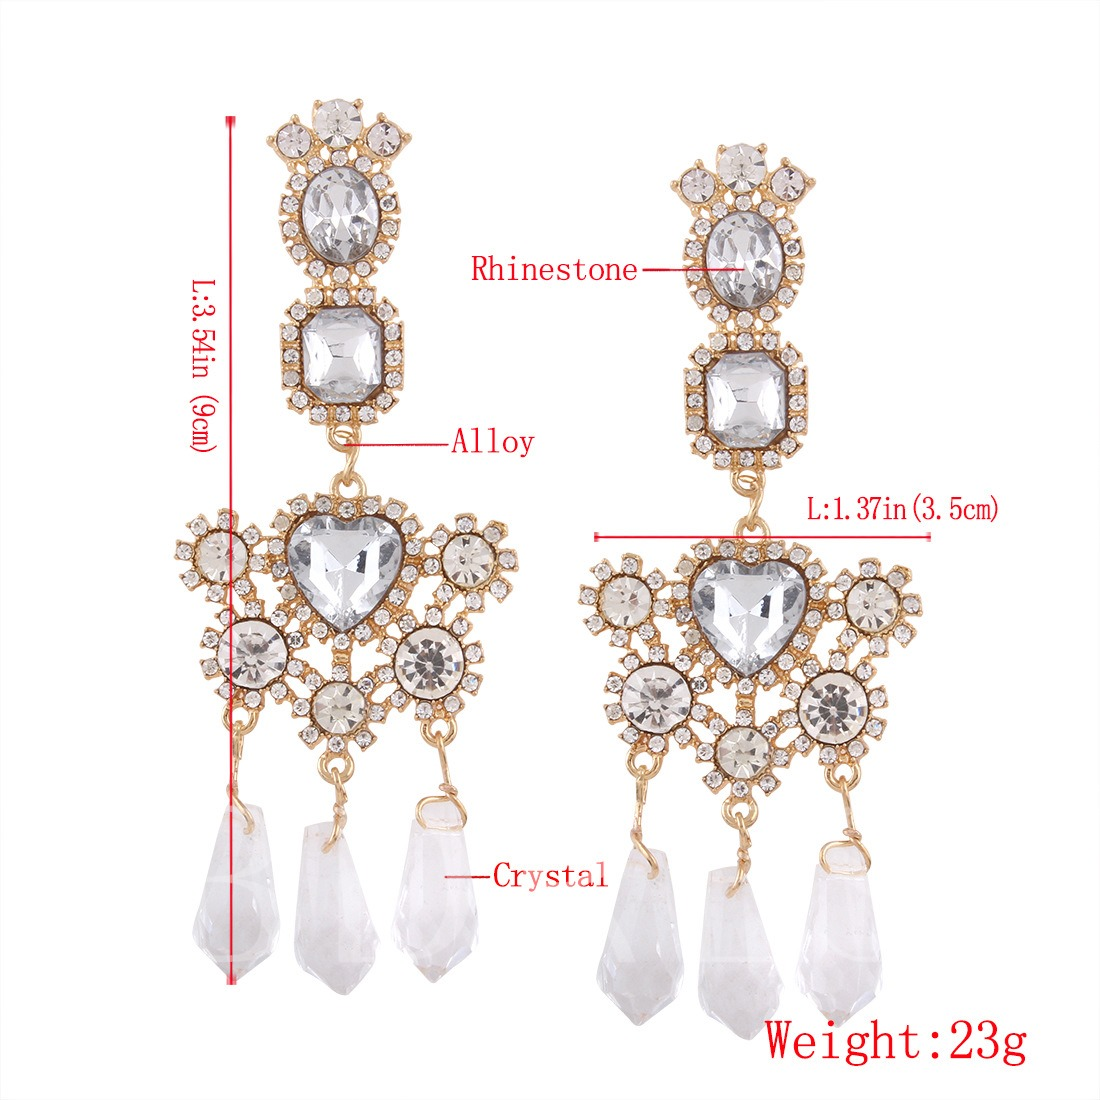 Rhinestone Alloy Artificial Crystal Heart Shaped Earrings